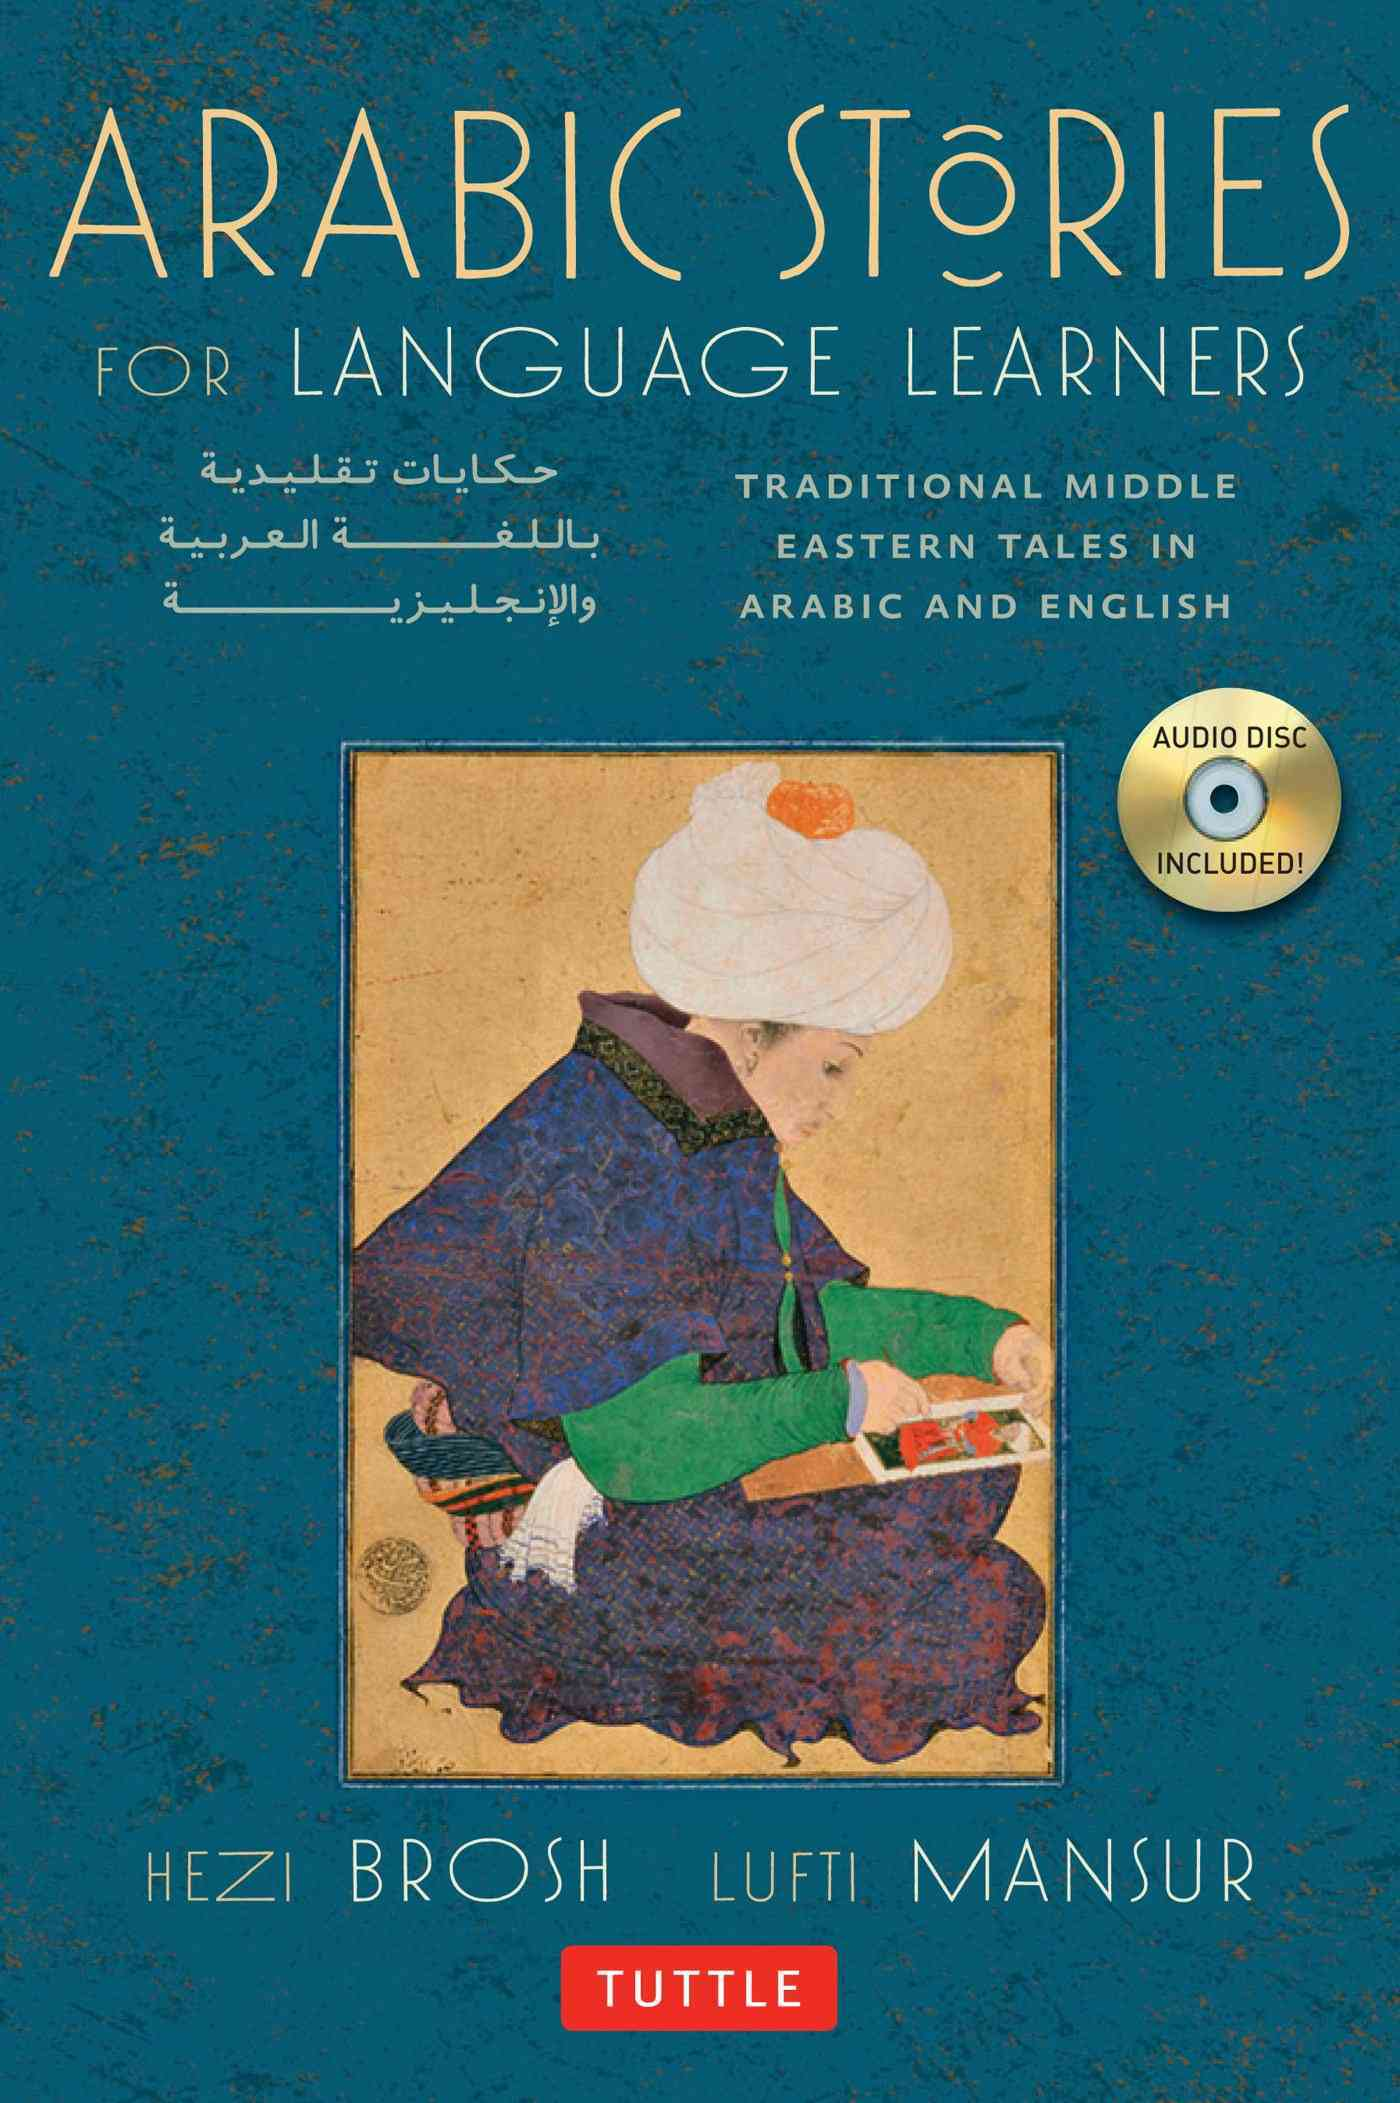 Arabic Stories for Language Learners By Brosh, Hezi/ Mansur, Lutfi